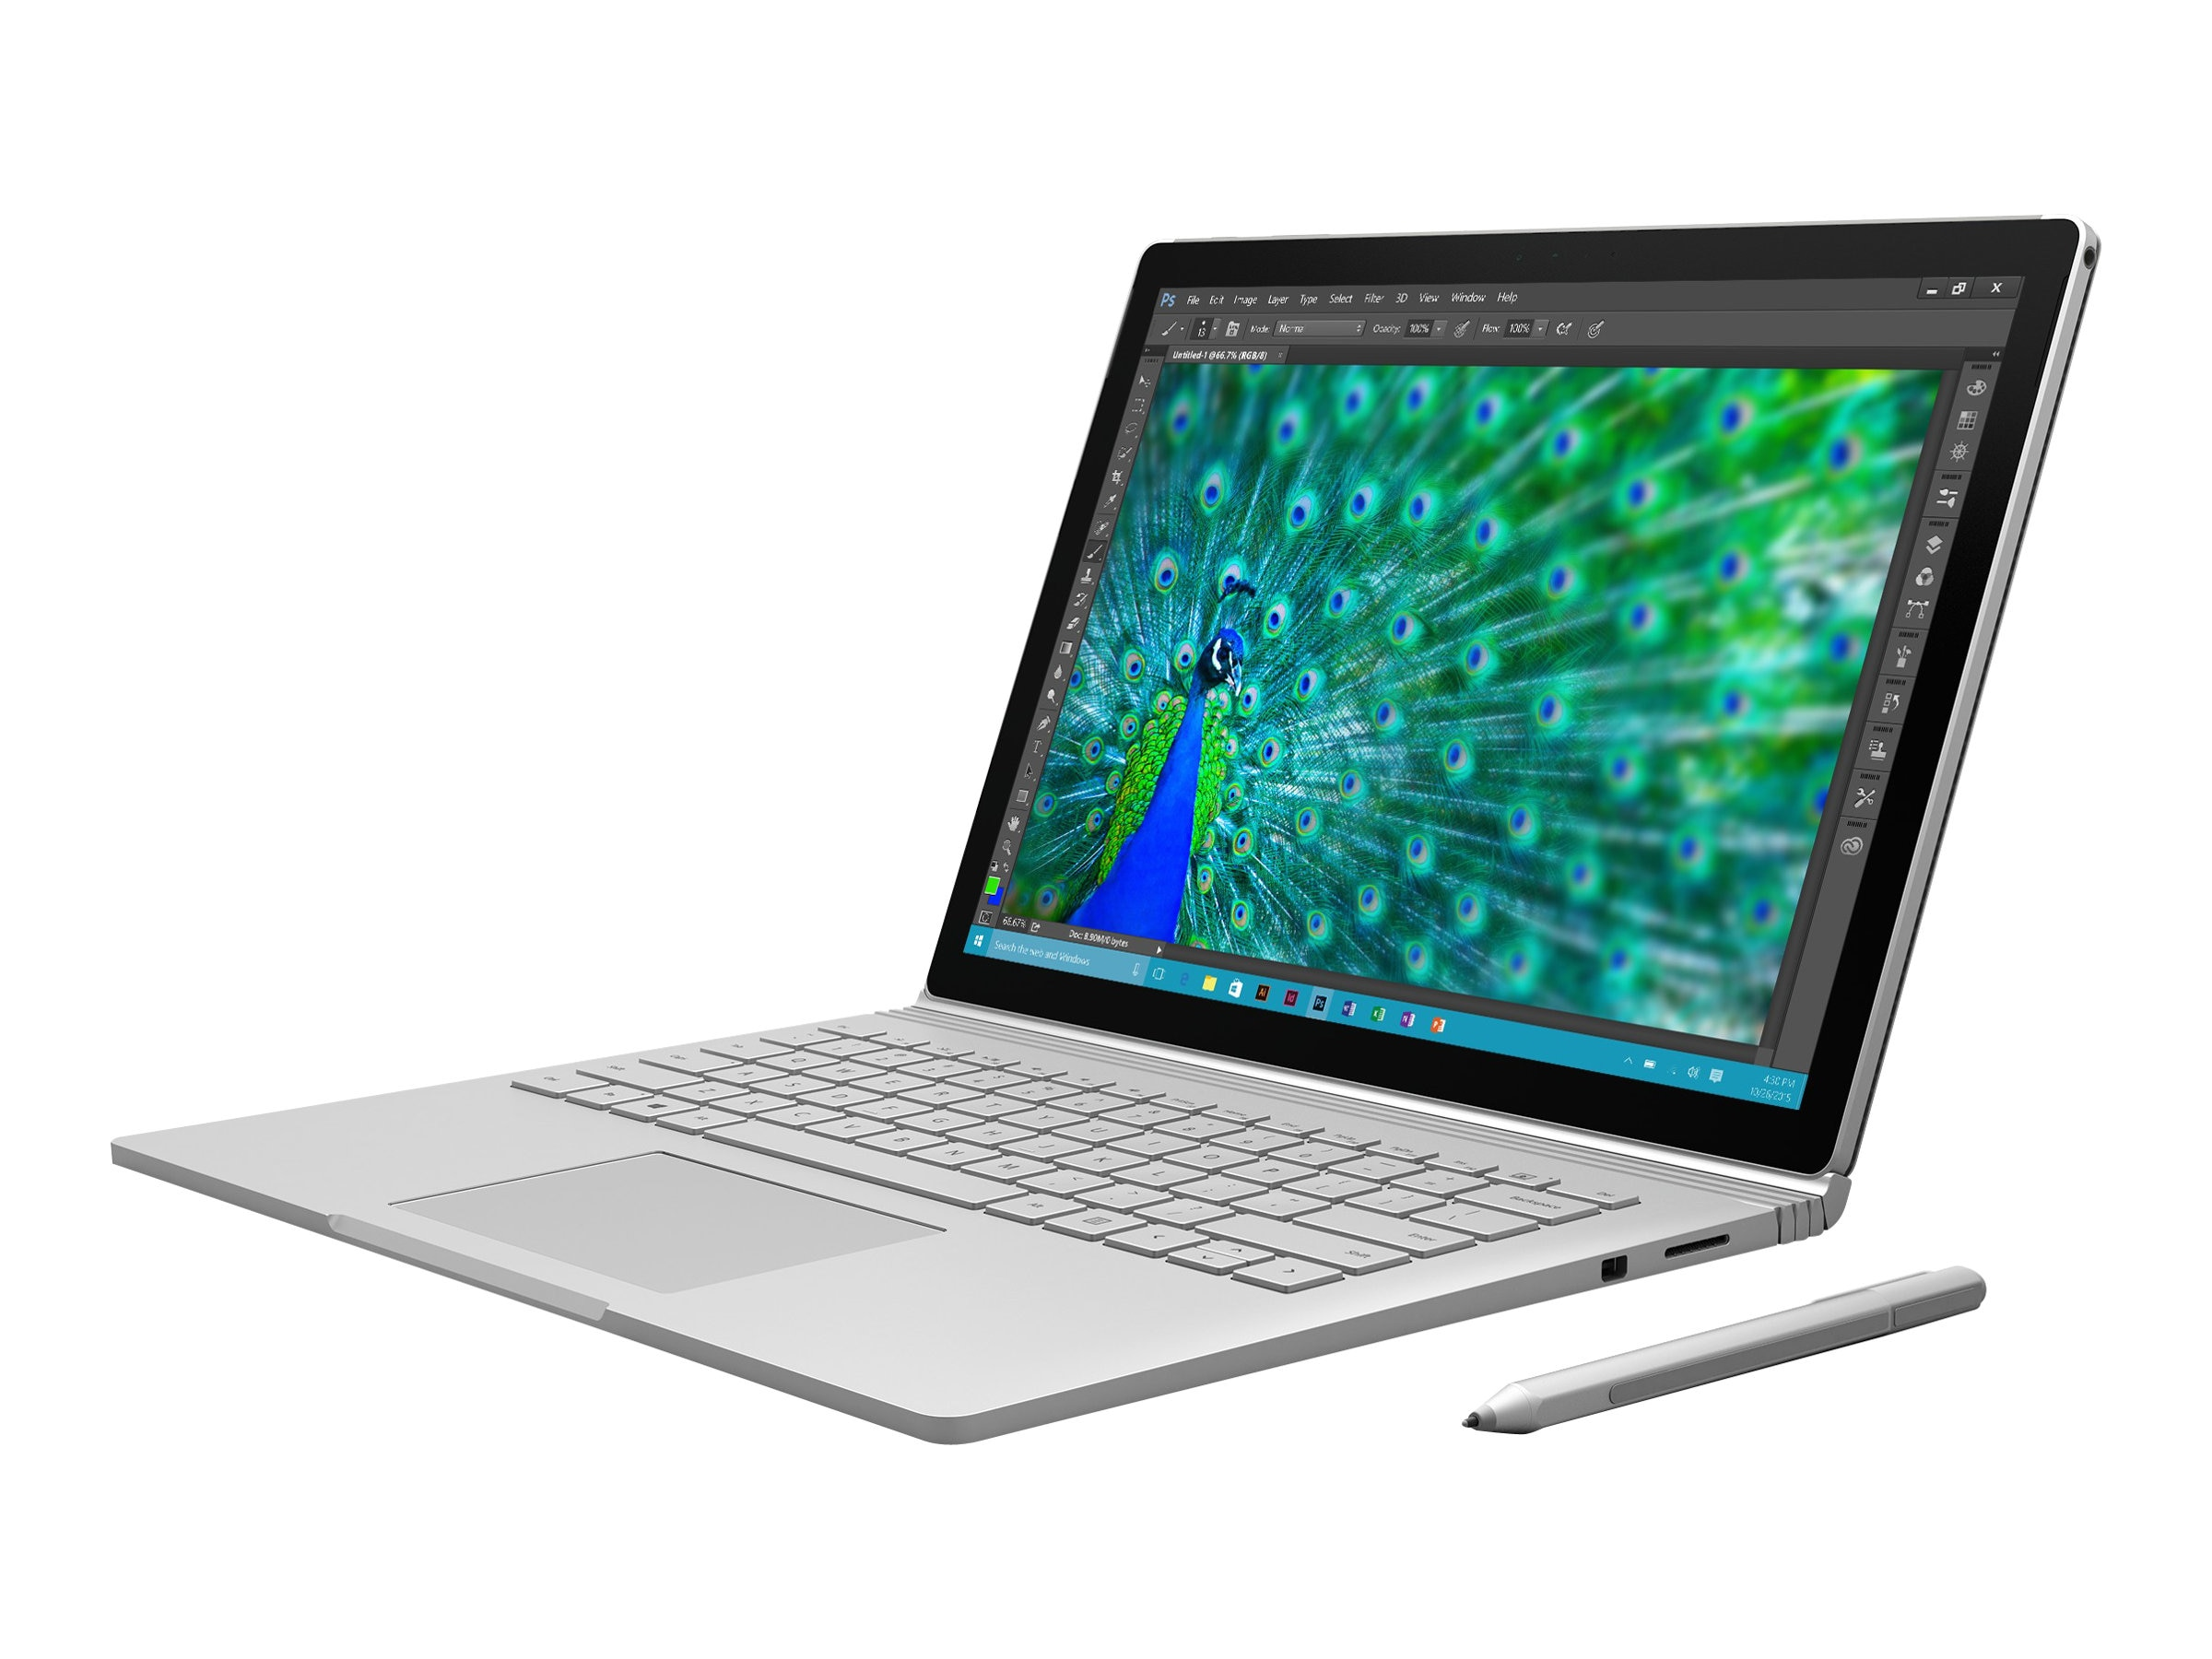 Microsoft Surface Book Core i7 dGPU 8GB 256GB, SW5-00001, 30801941, Notebooks - Convertible